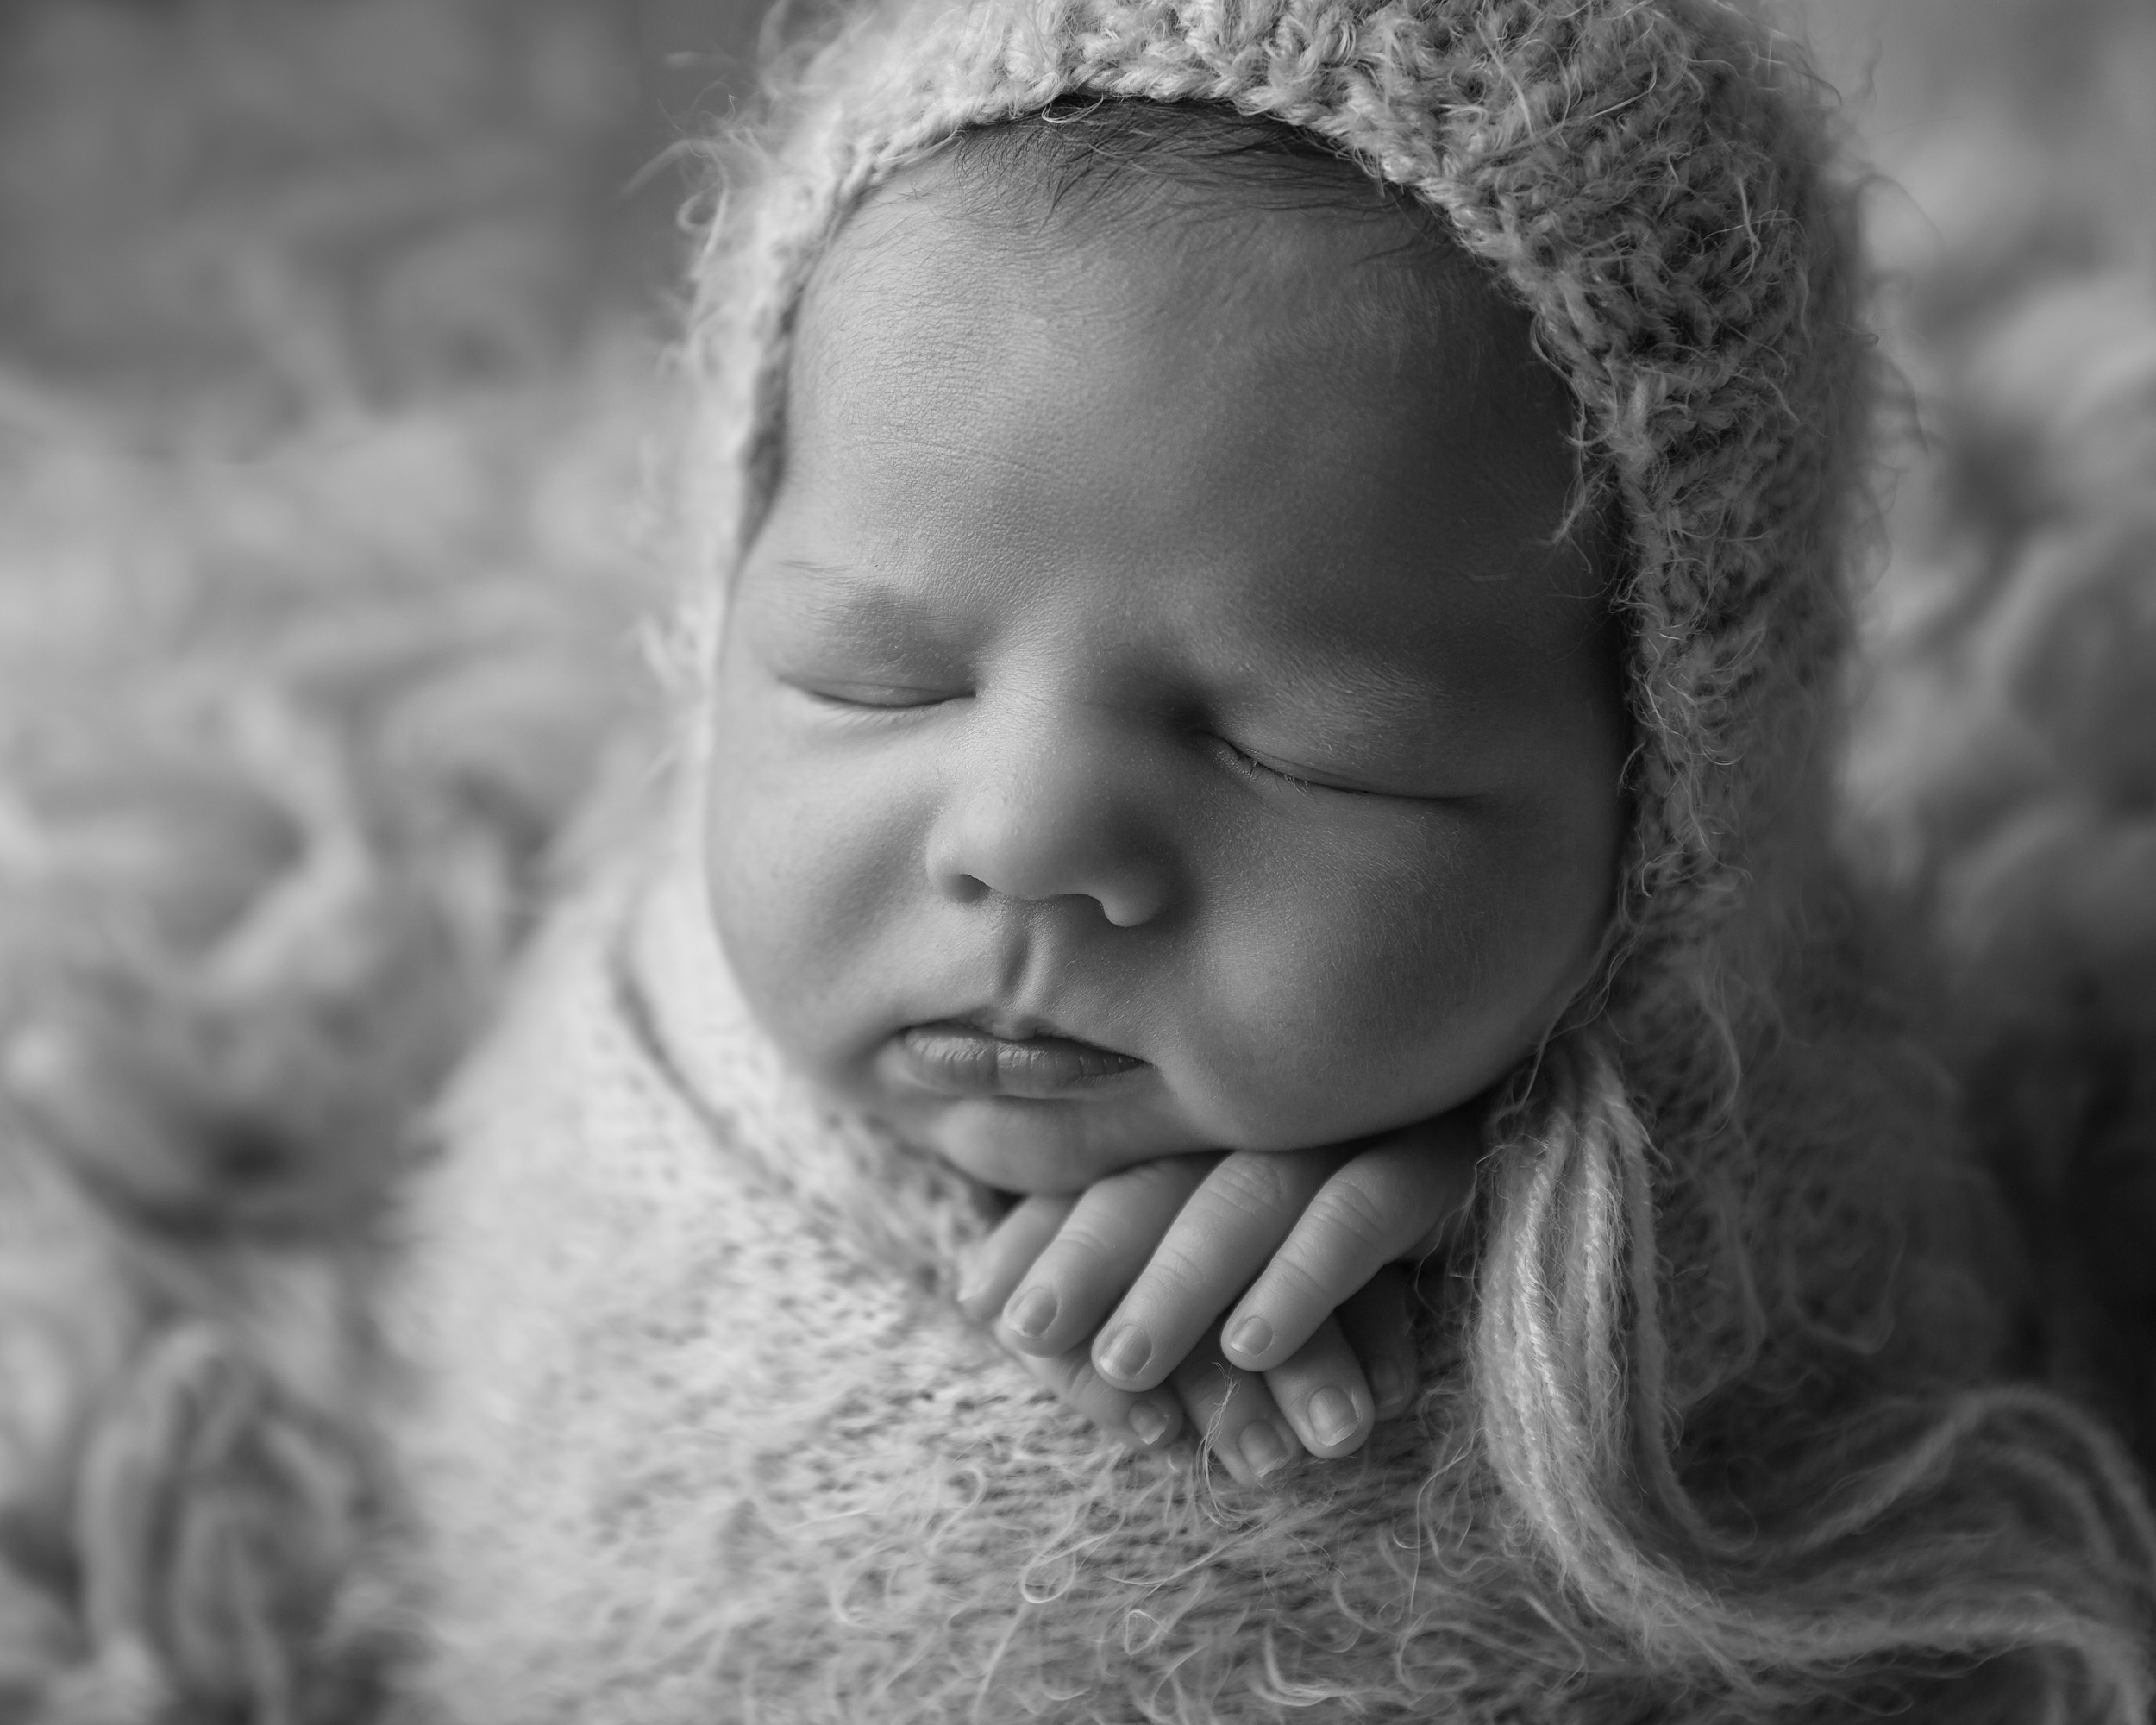 Close up of a newborn baby's face in potato sack pose by Cheshire newborn photographer in Sandbach